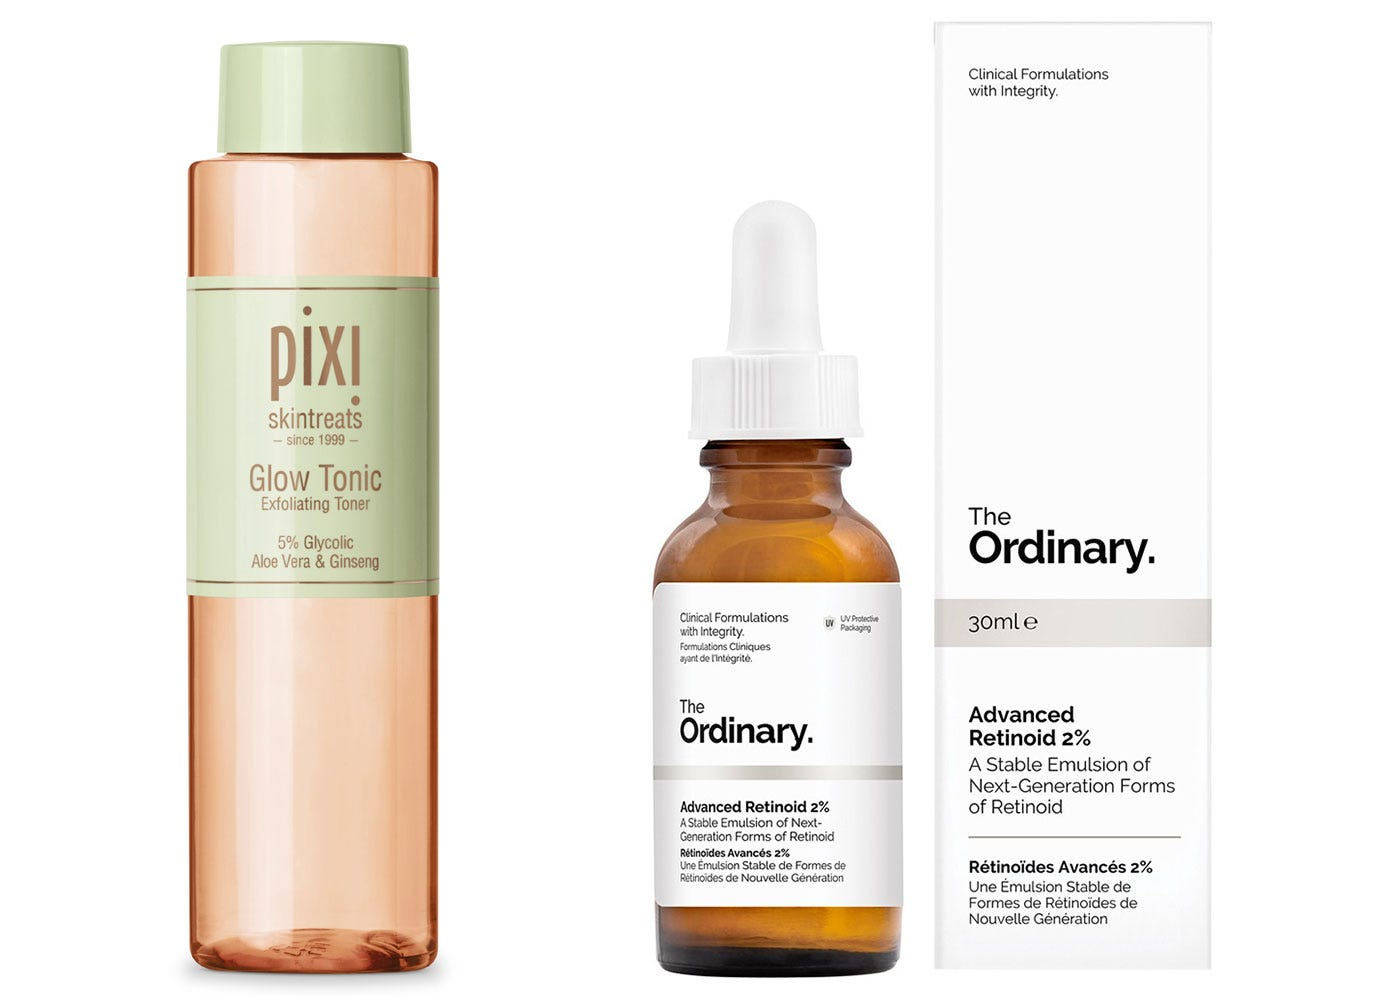 Best Skincare Routine Treatments For Hormonal Acne